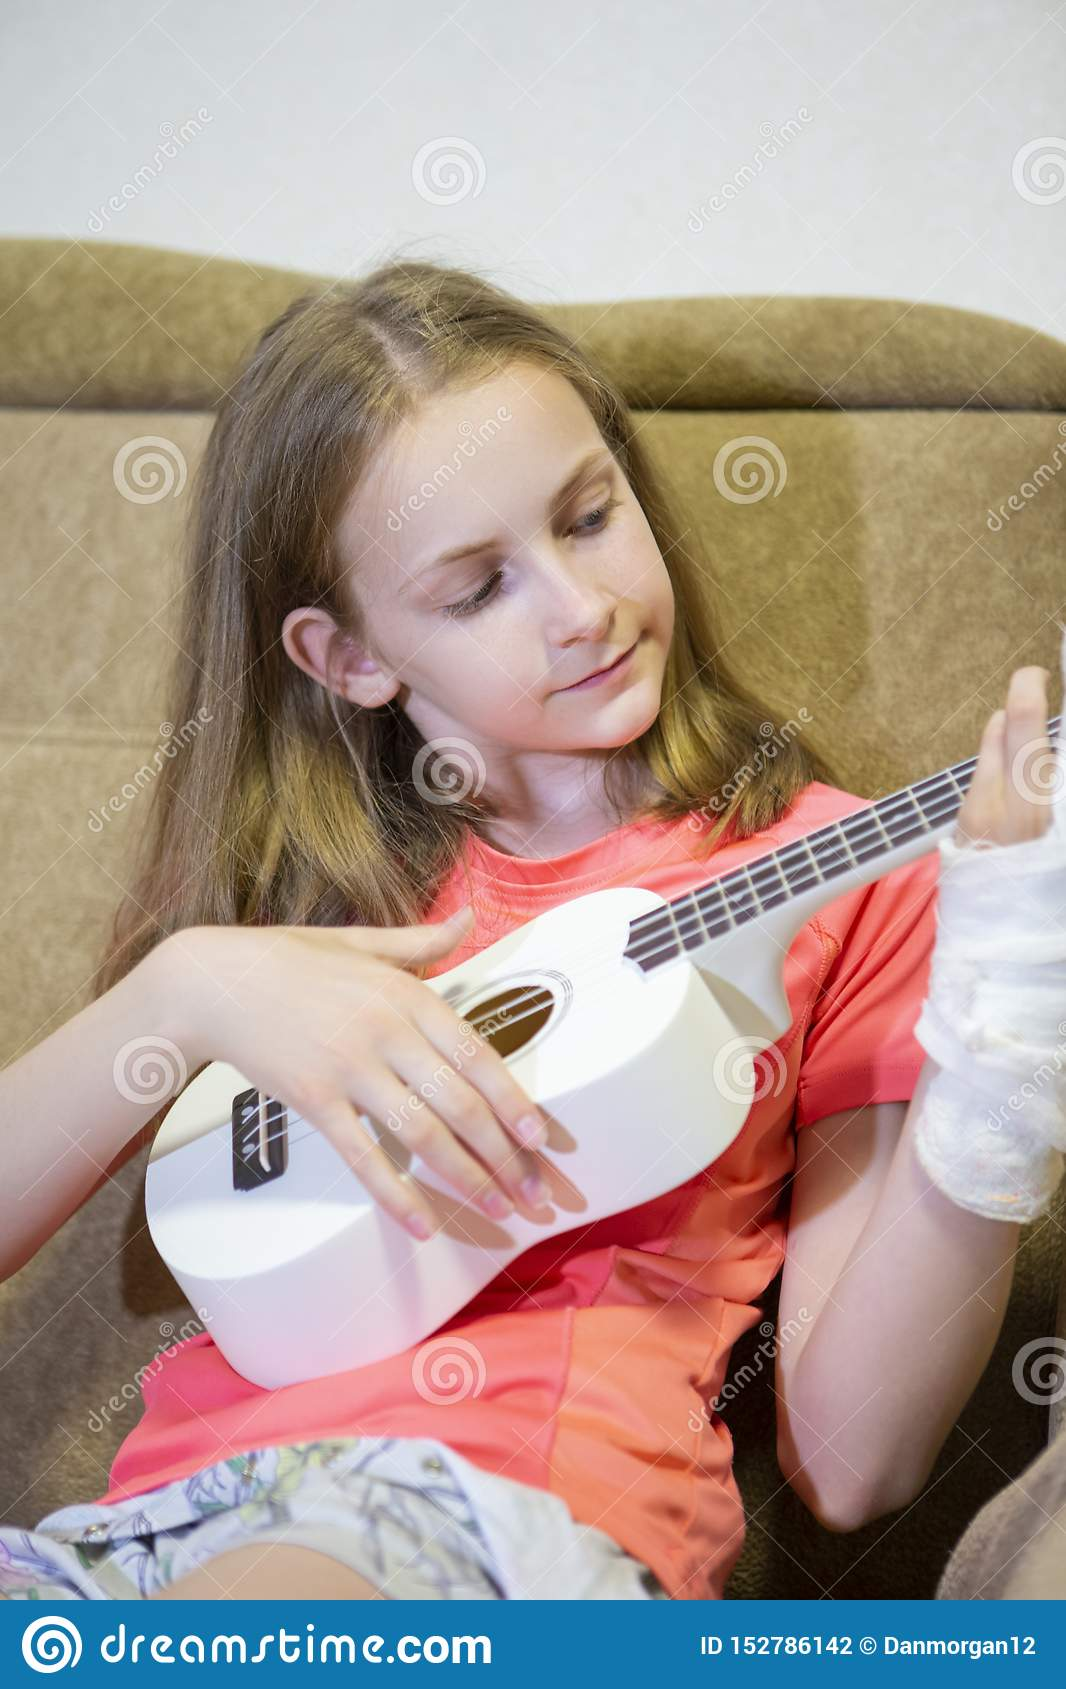 Portrait of Caucasian Girl With Injured Hand In Plaster Playing hawaiian Guitar Indoors